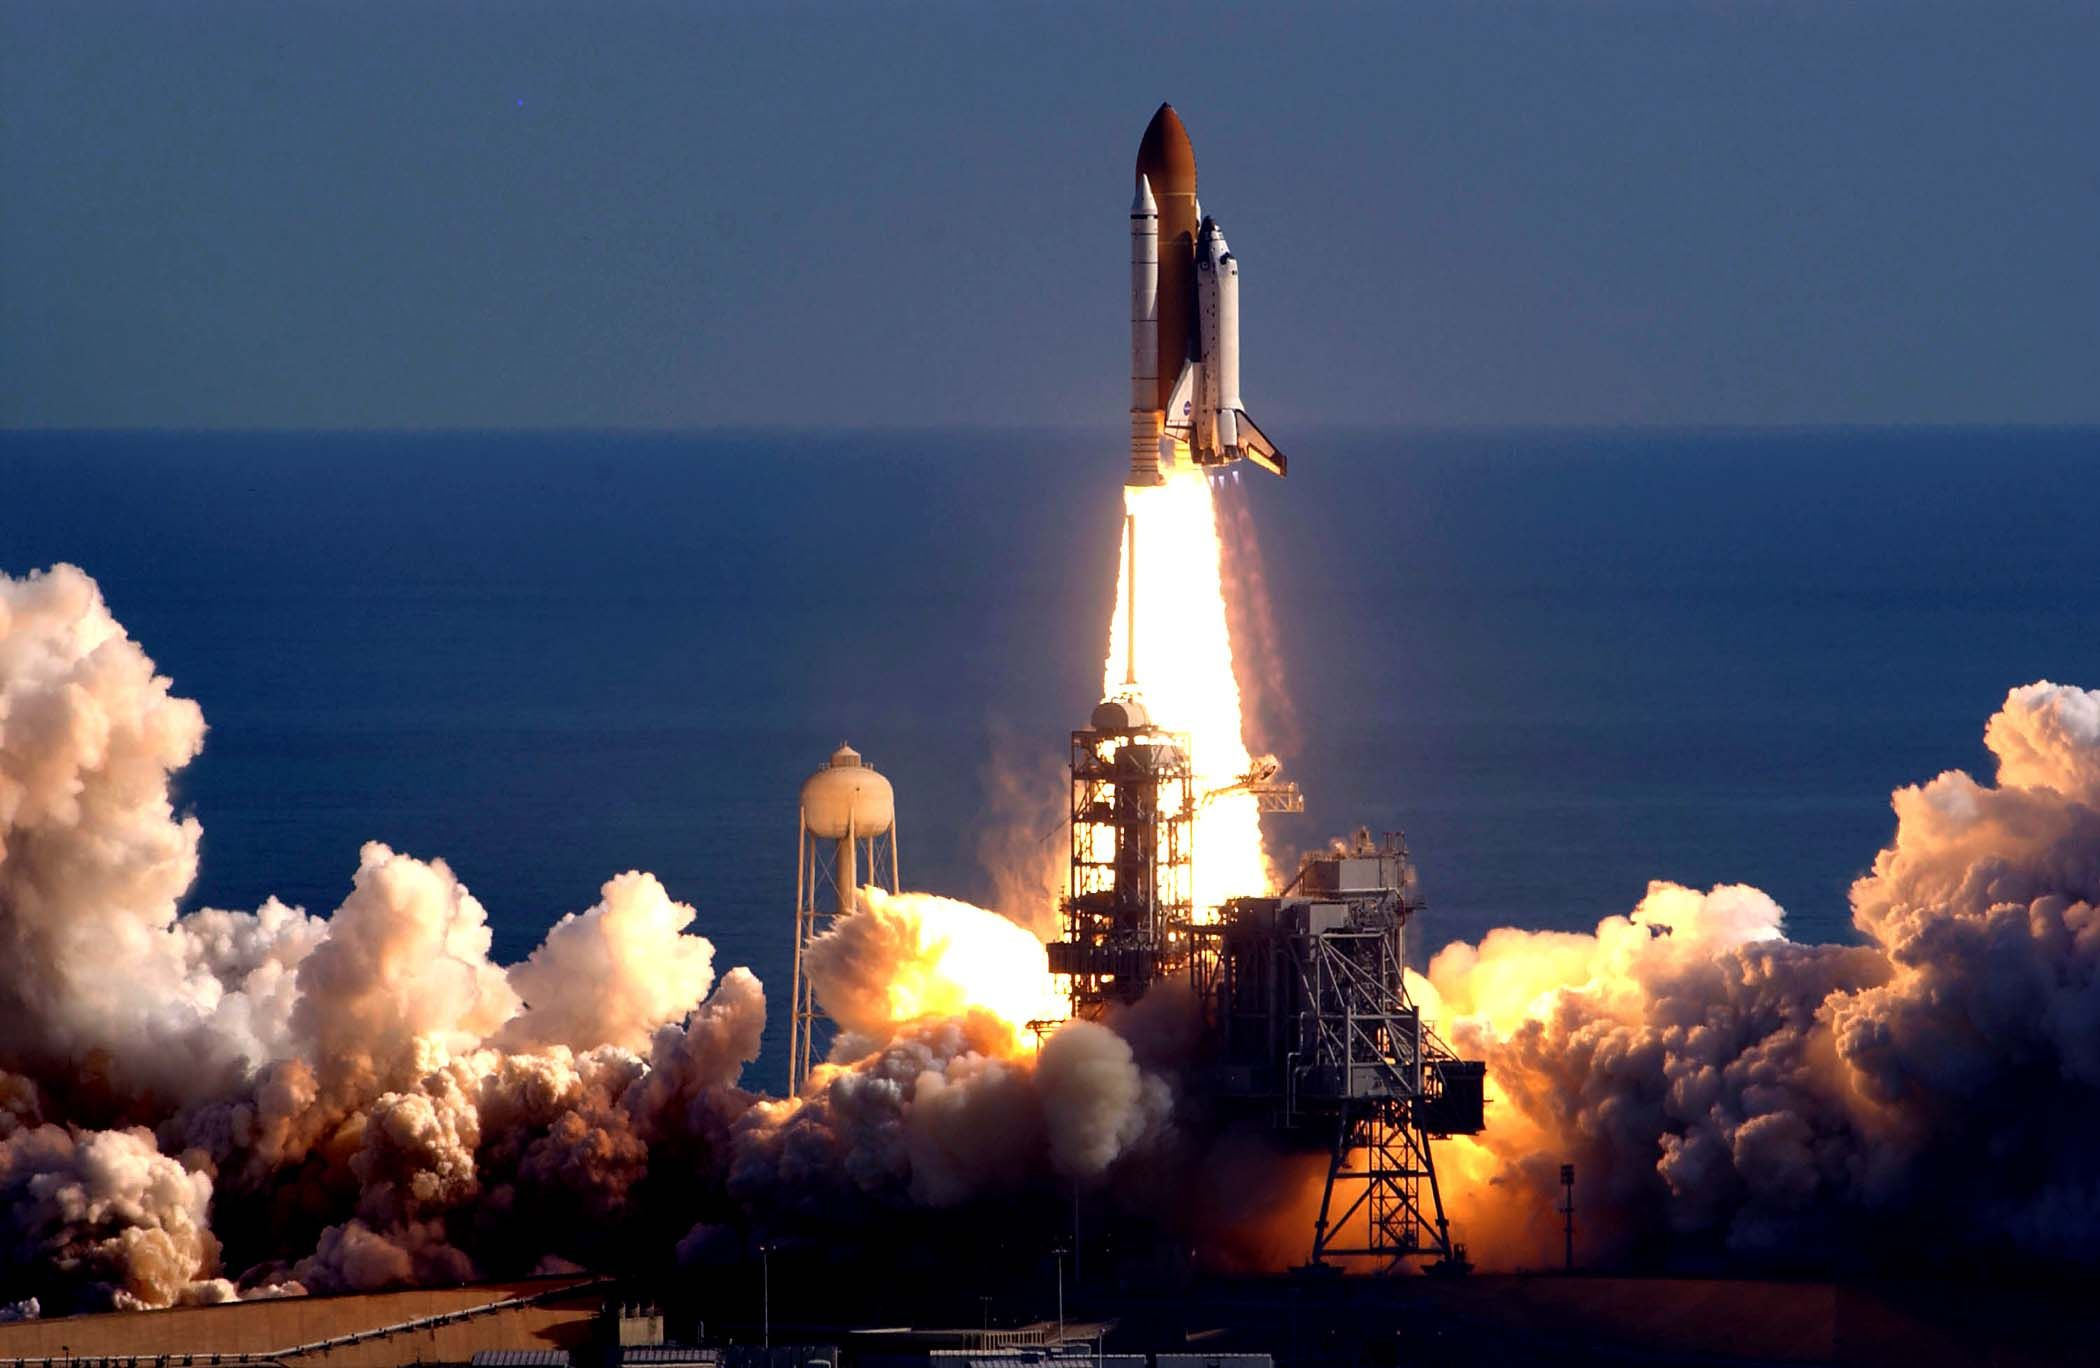 space shuttle columbia information - photo #7